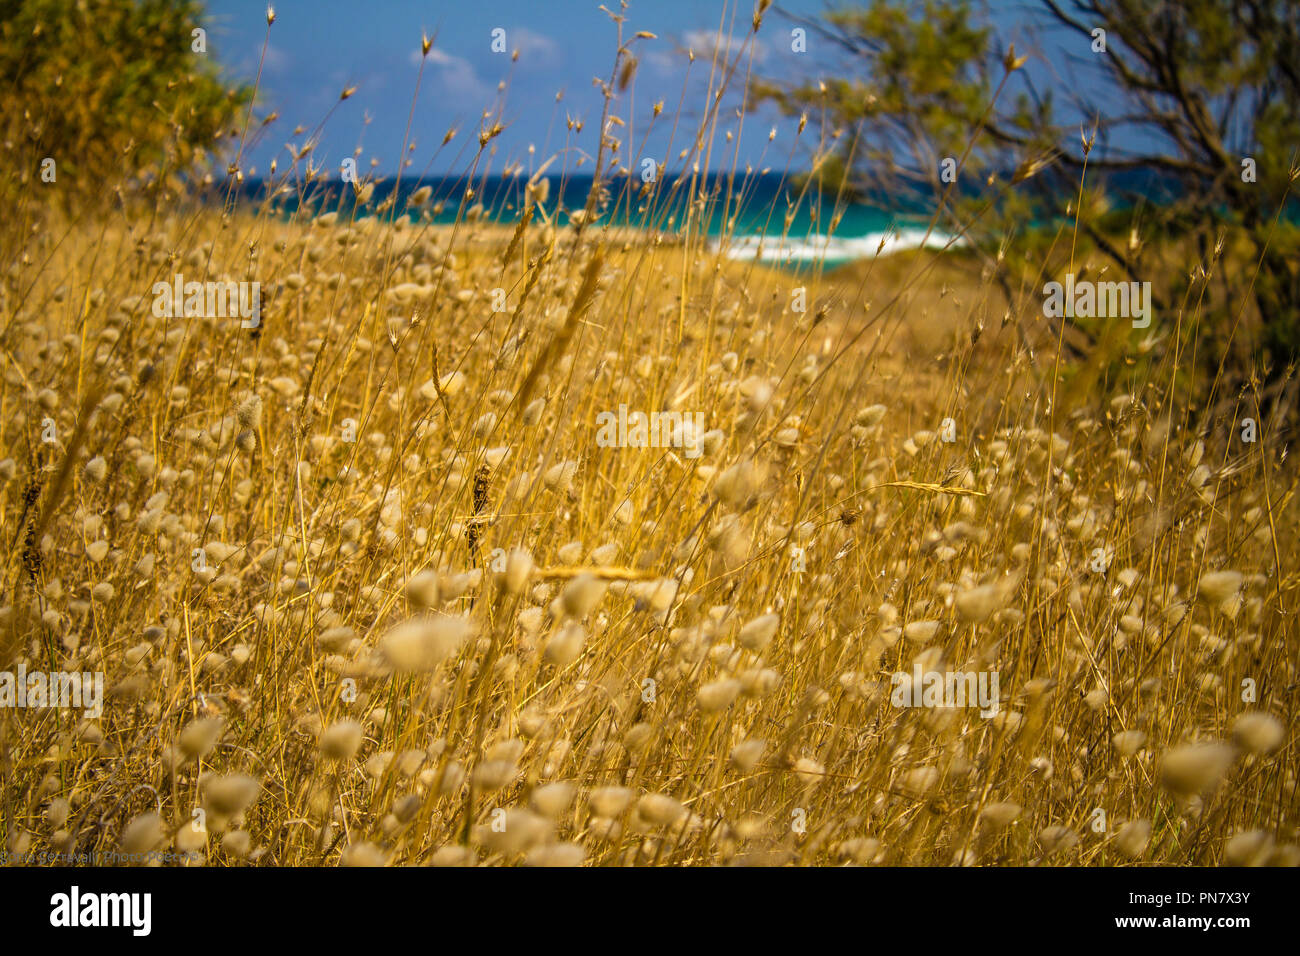 A day between countryside and sea in Apulia - Stock Image